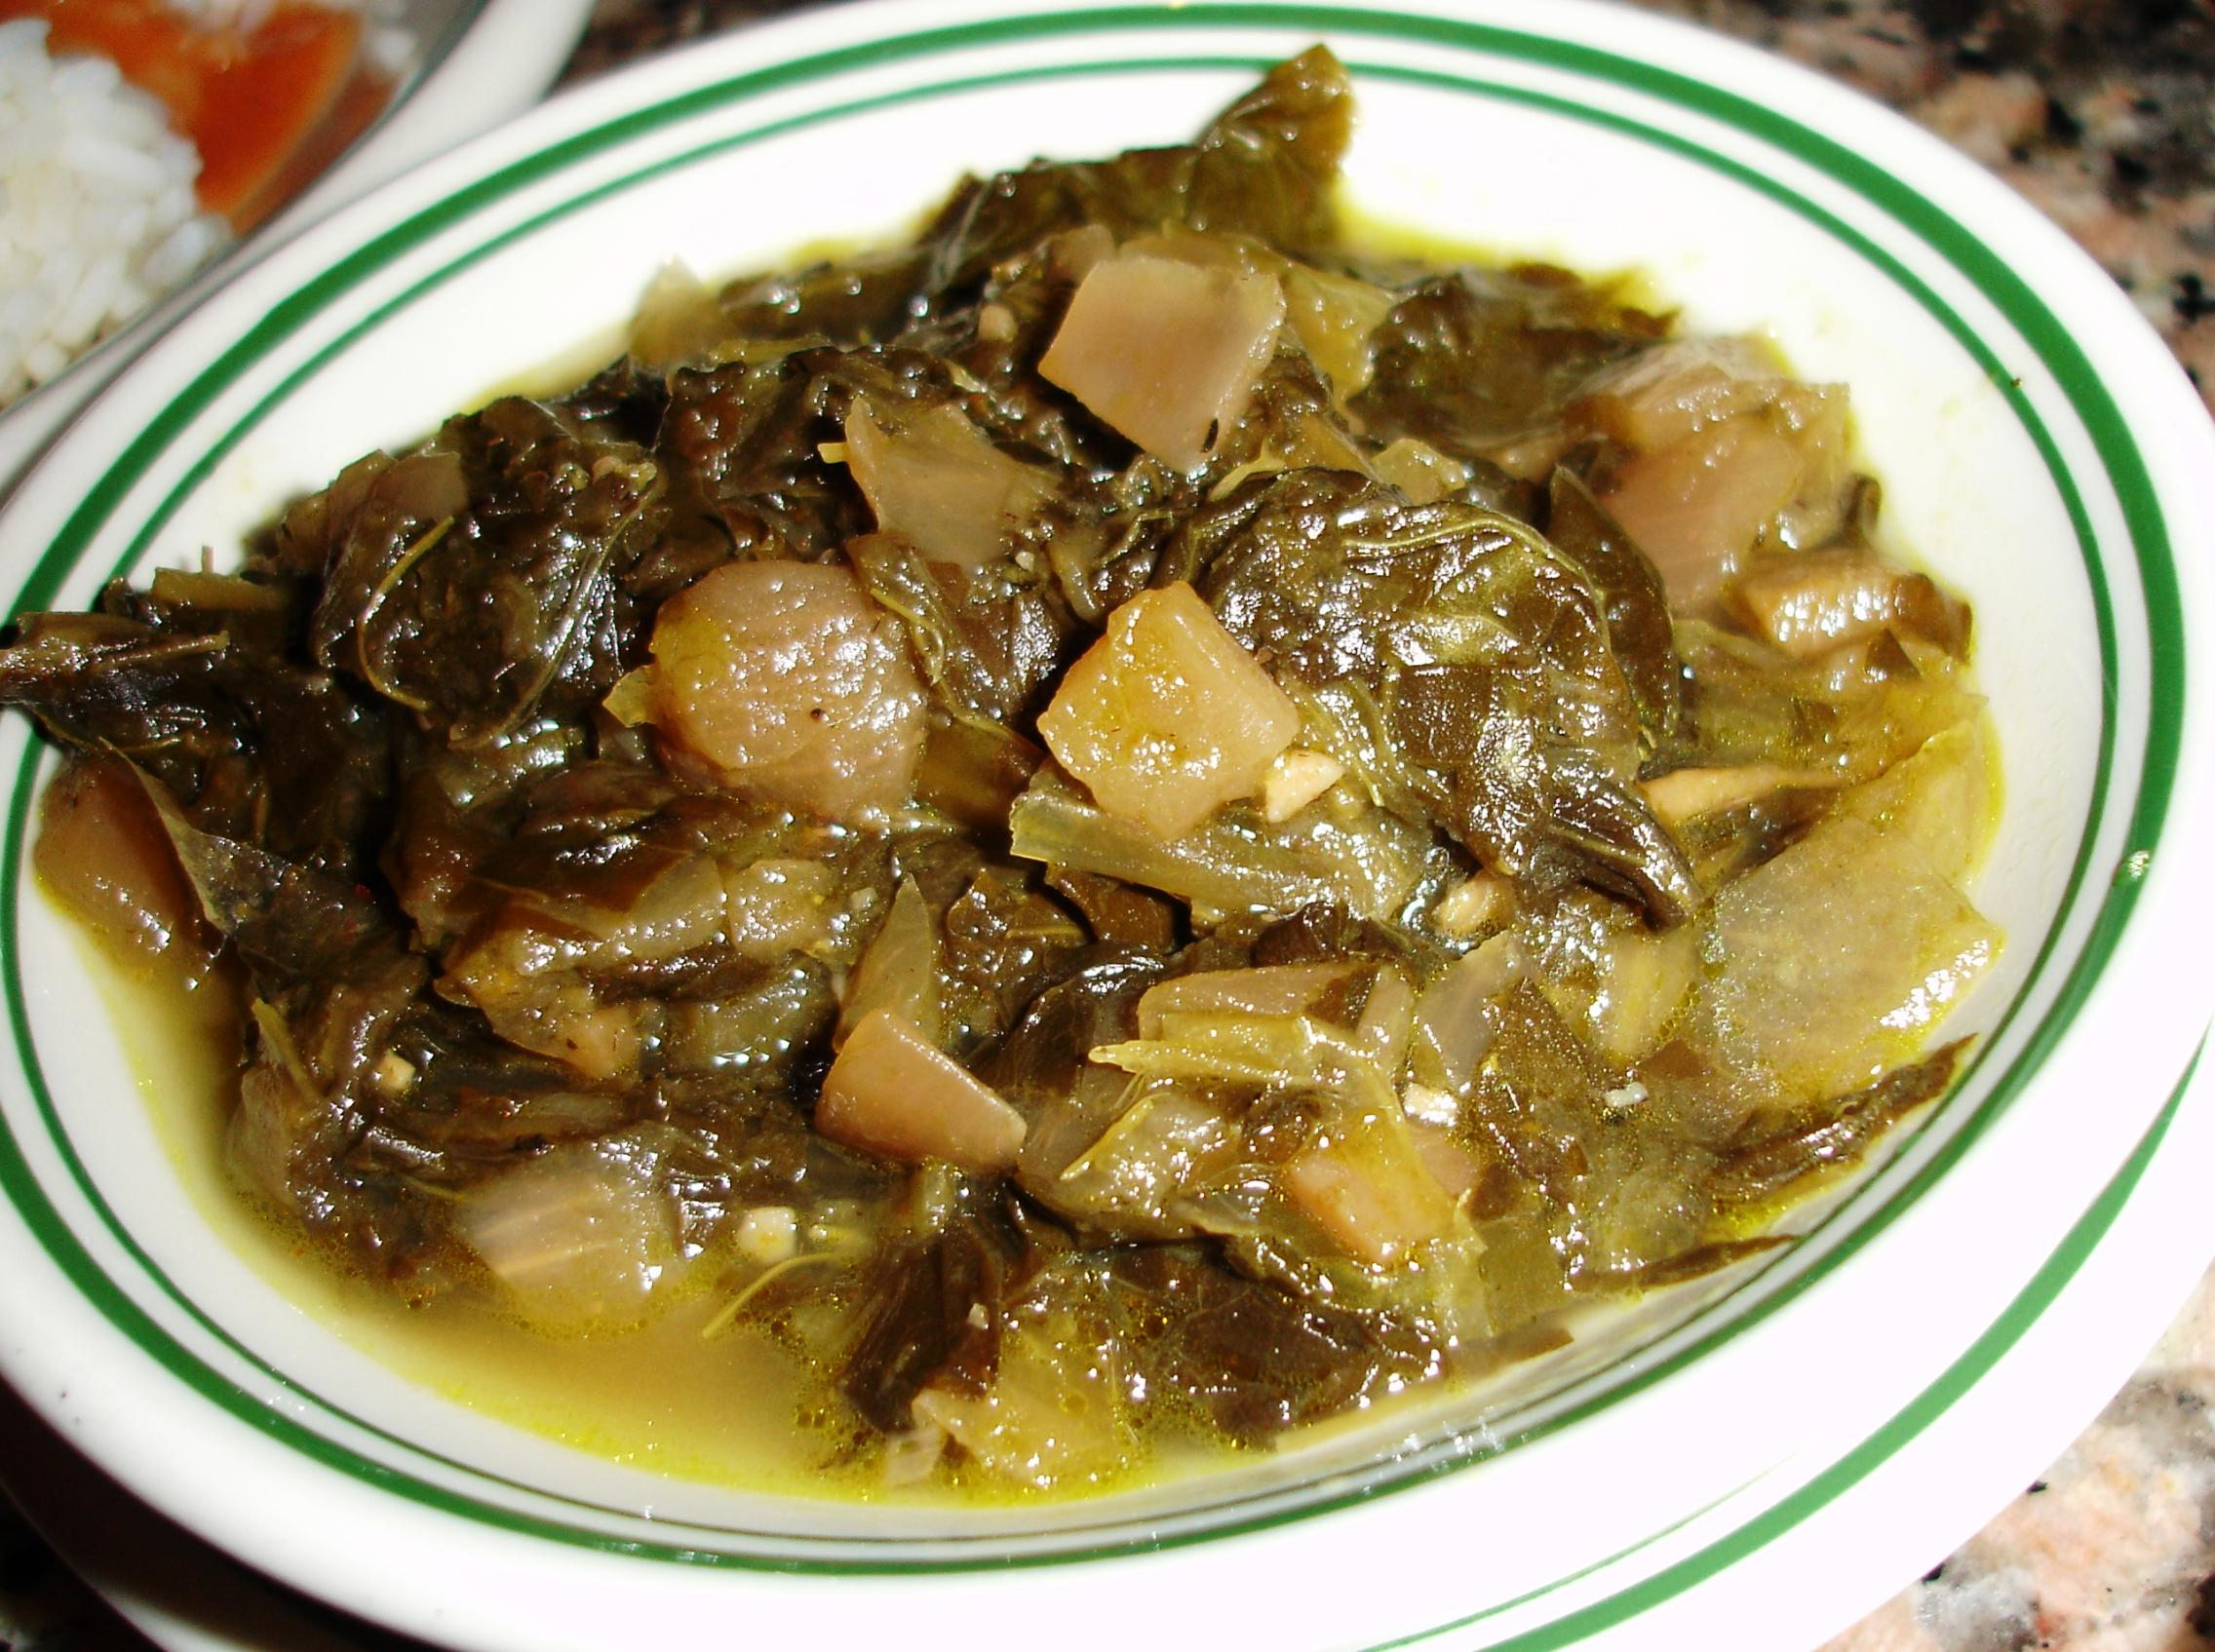 Turnip greens would help round out a meal where gumbo is the main event.